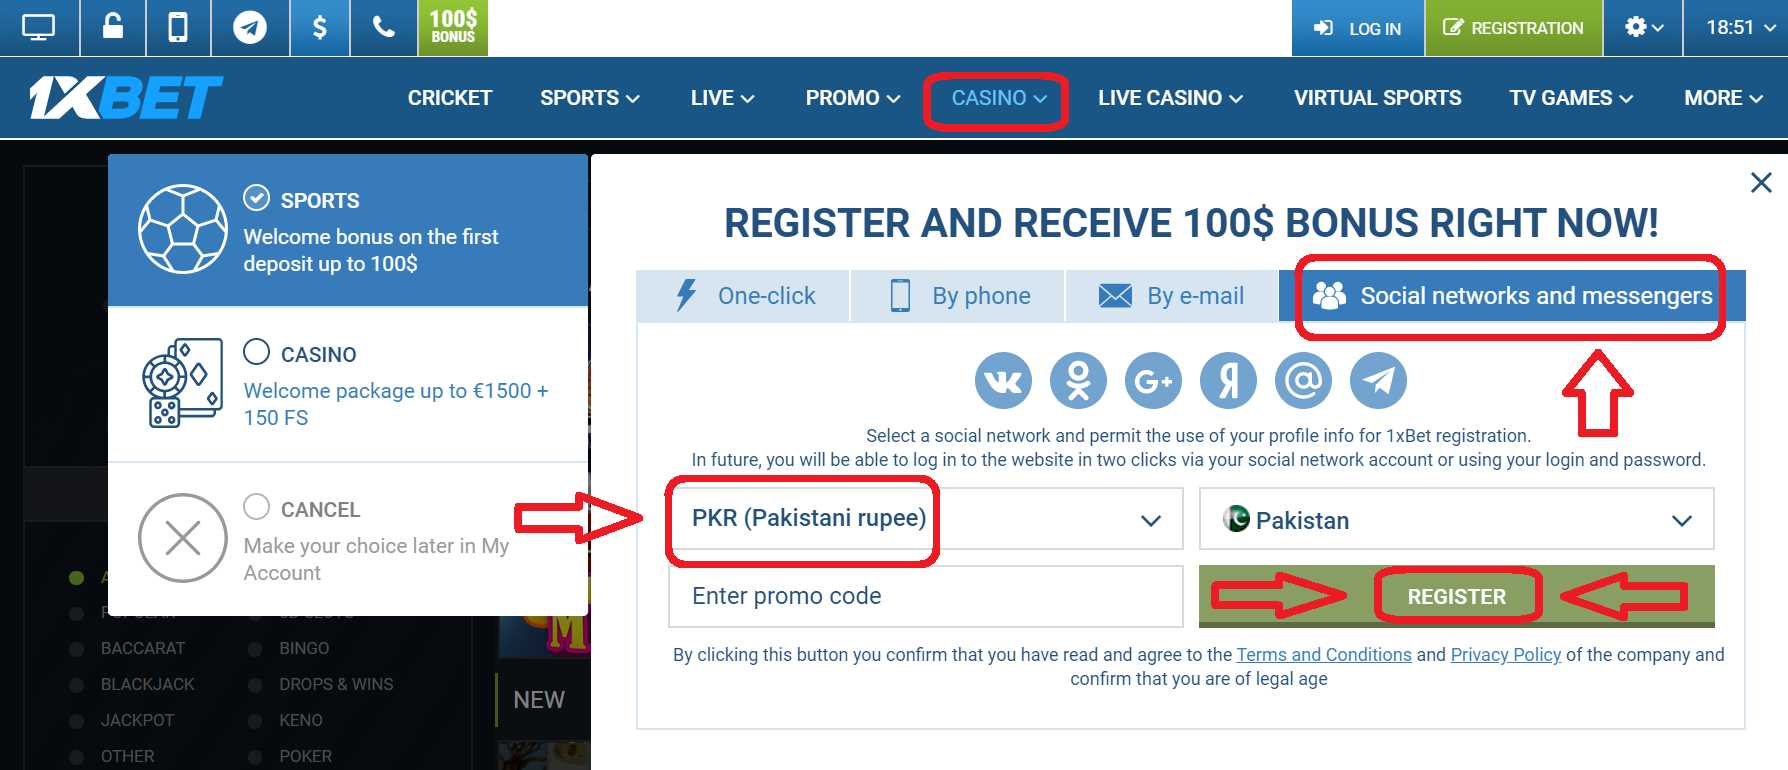 1xBet - Register Utilizing Your Social Network Account